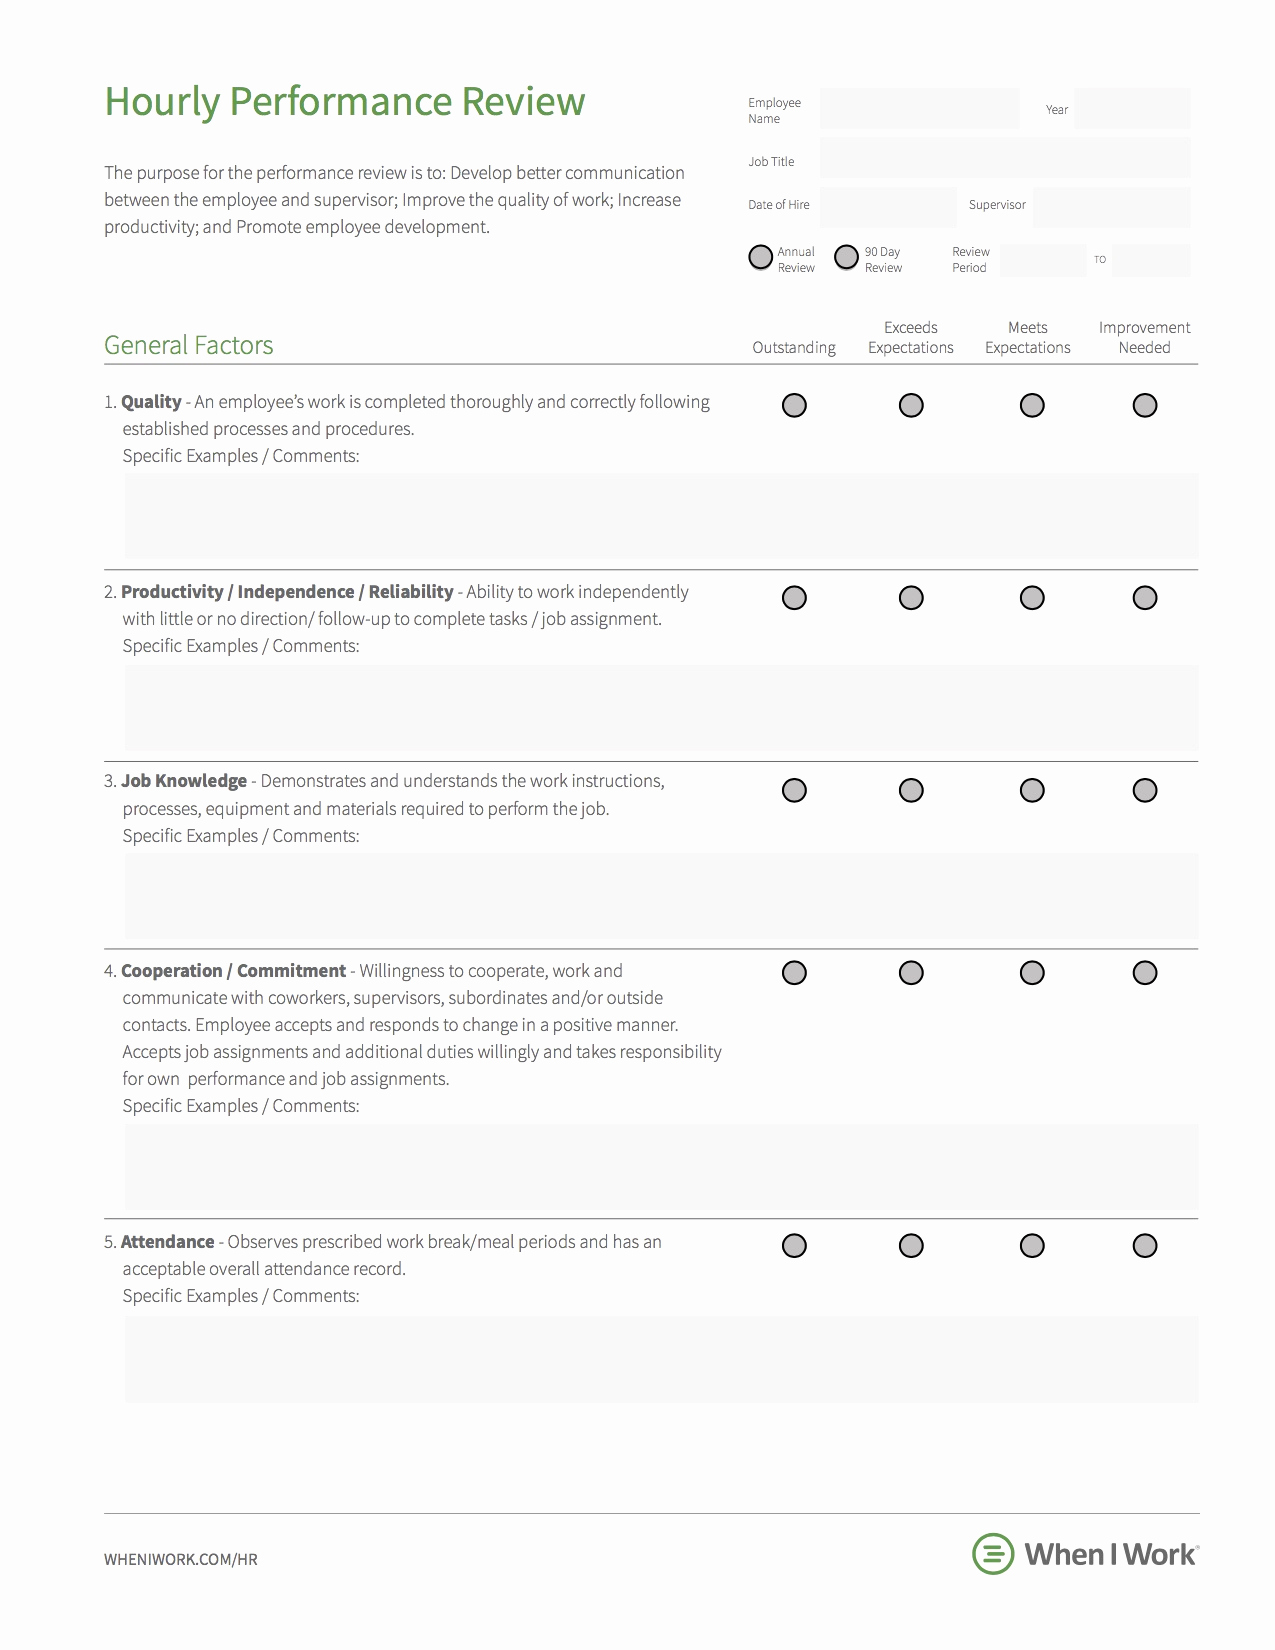 Employee Performance Evaluation Samples Best Of 8 Best Practices for Building An Effective Employee